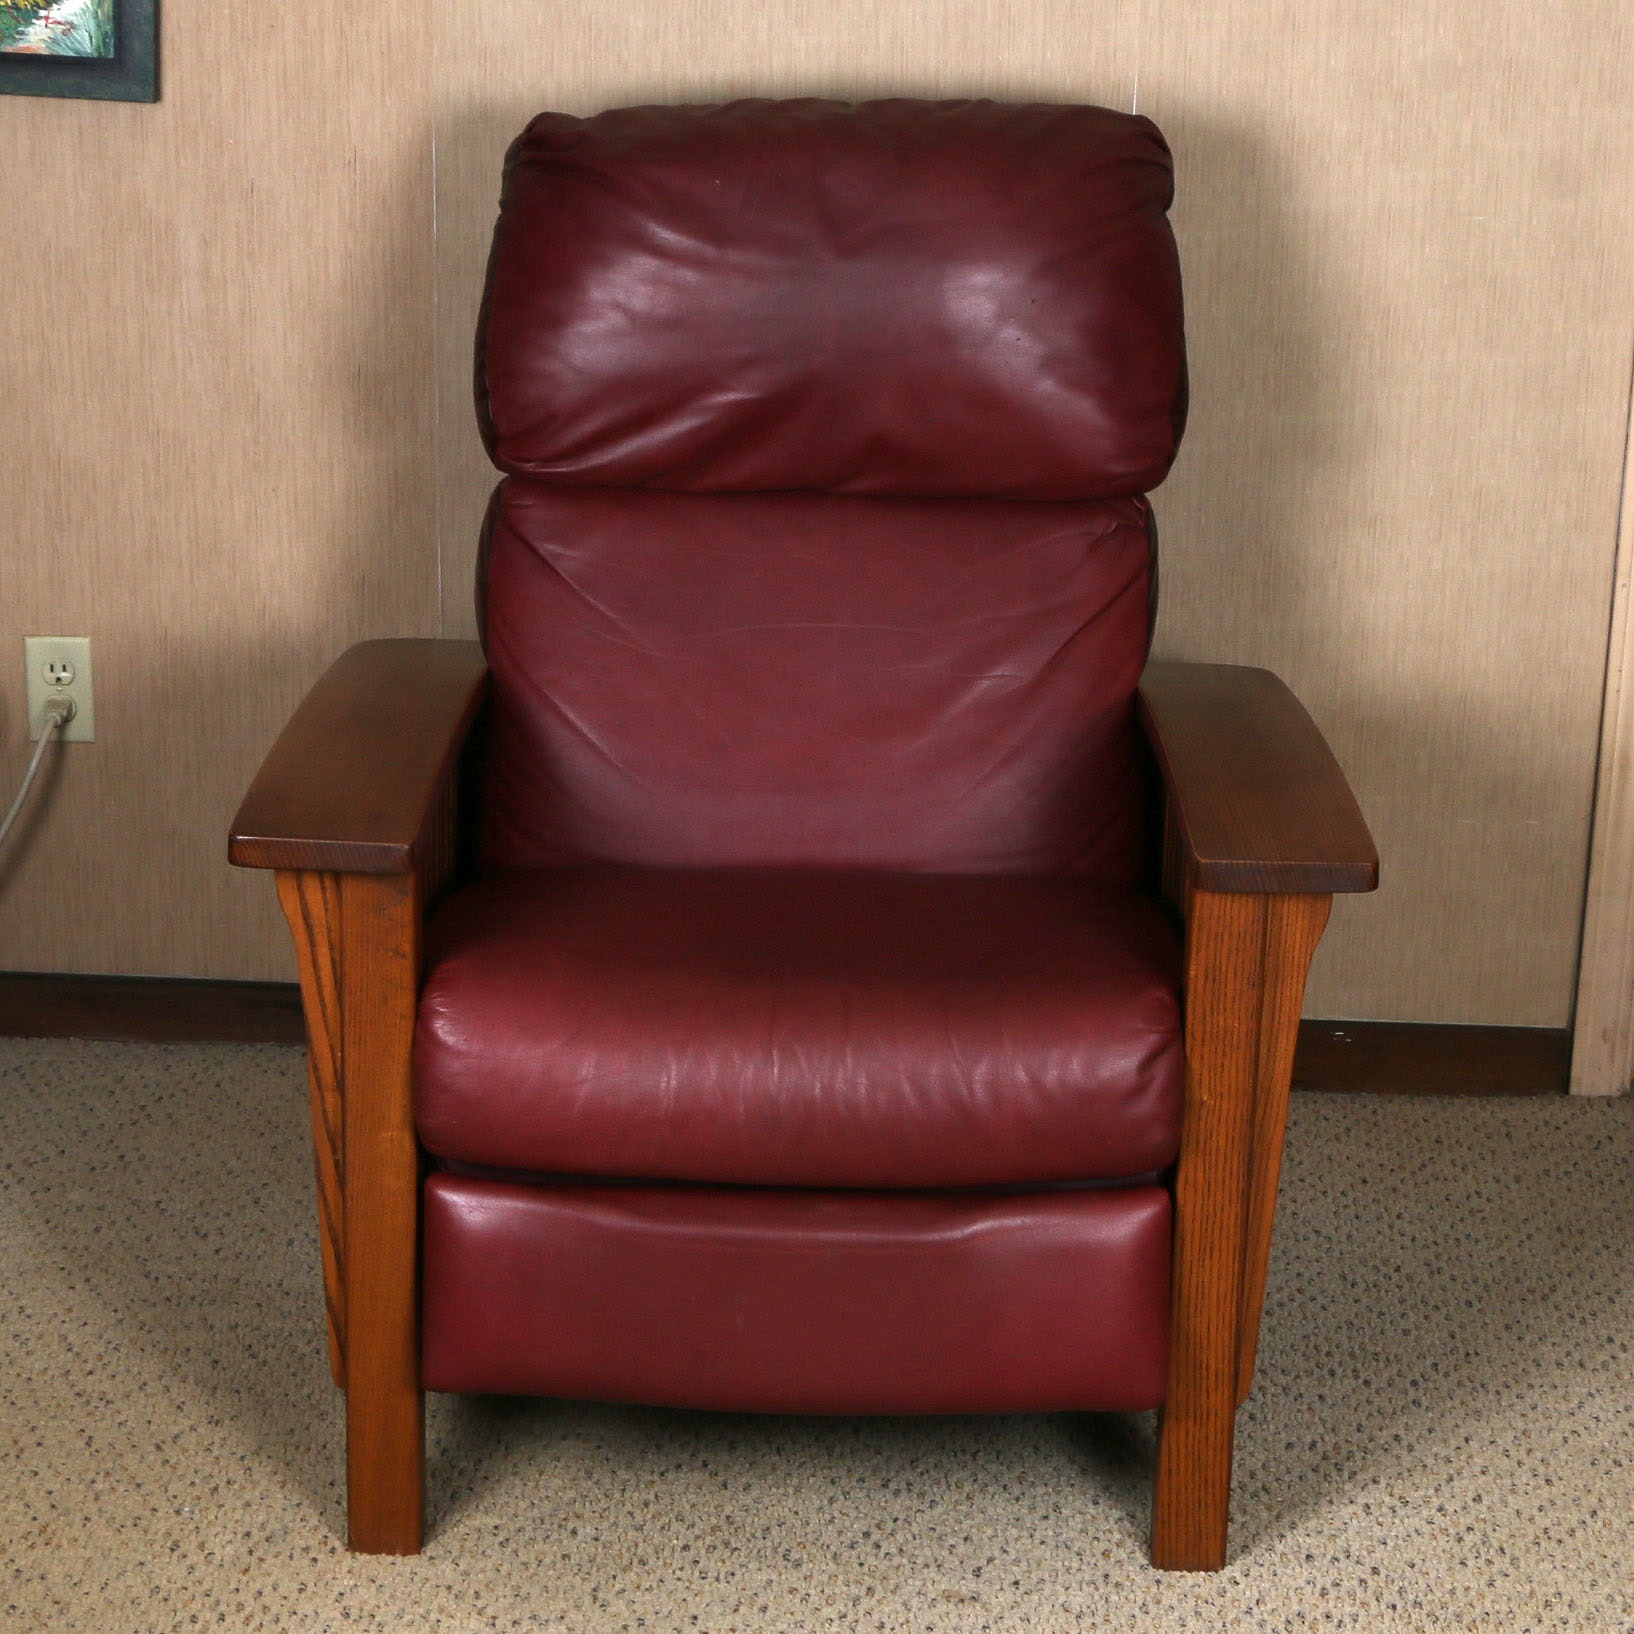 Early 21st Century Mission Style Leather Recliner By Barcalounger ...